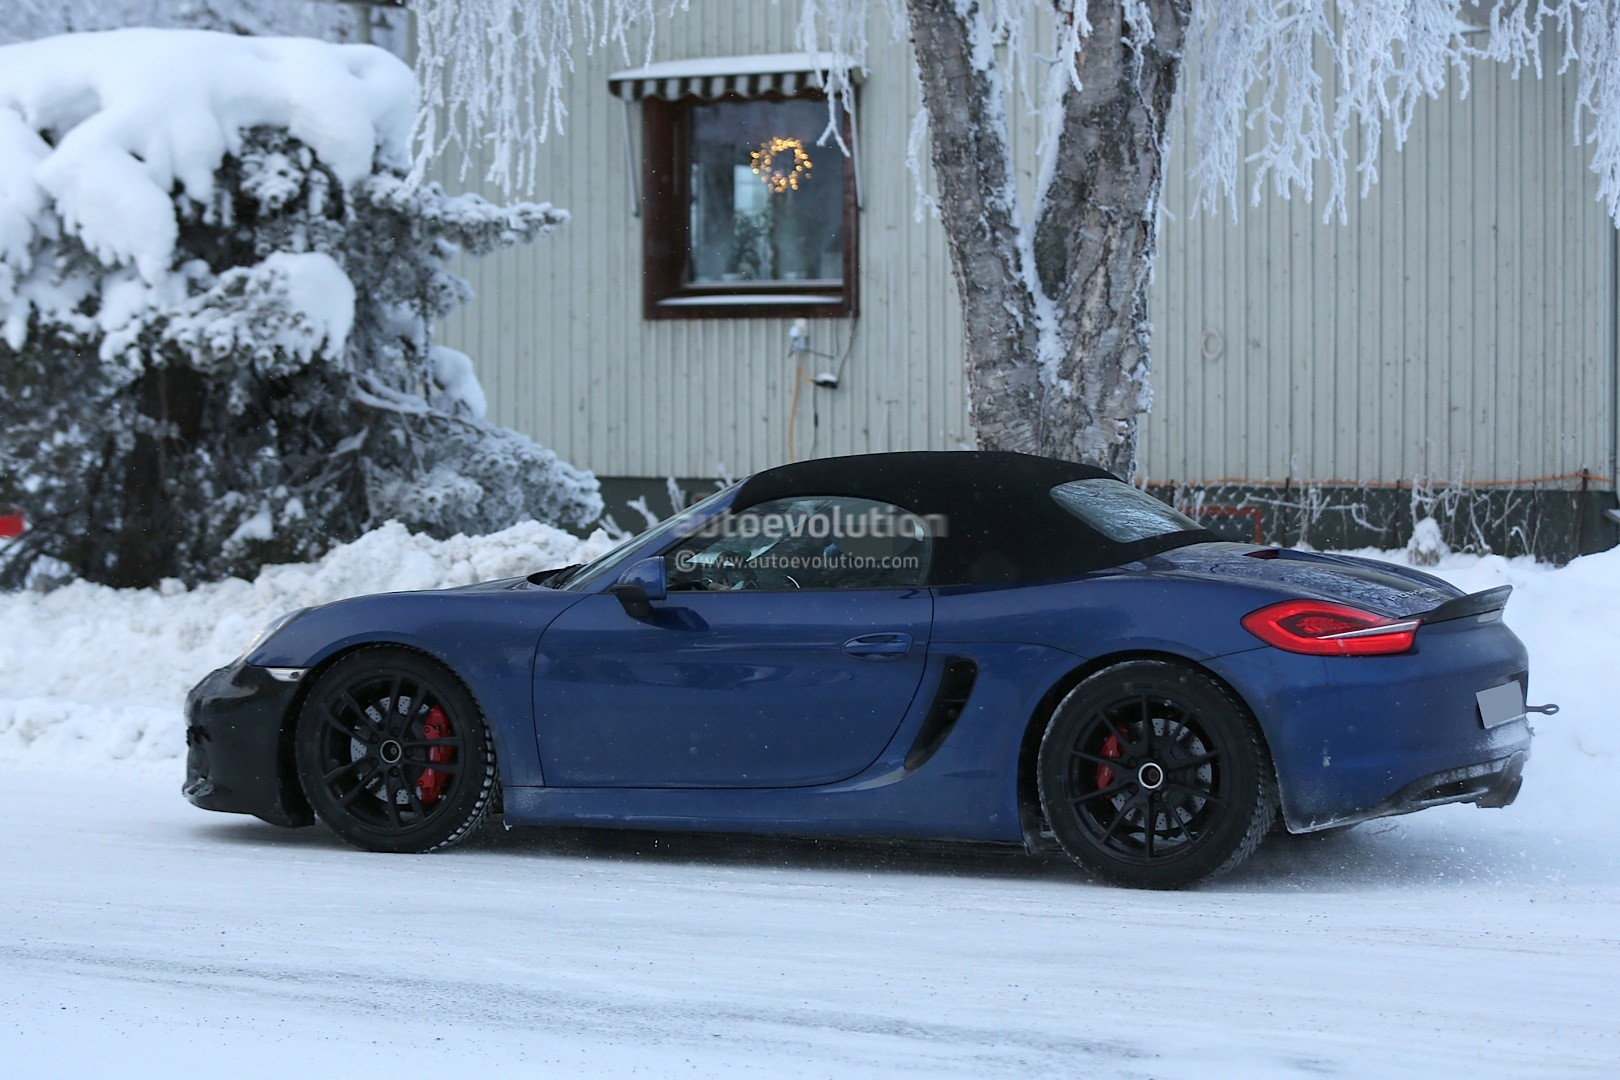 Spyshots 2016 Porsche Boxster Rs Spyder Shows Ducktail